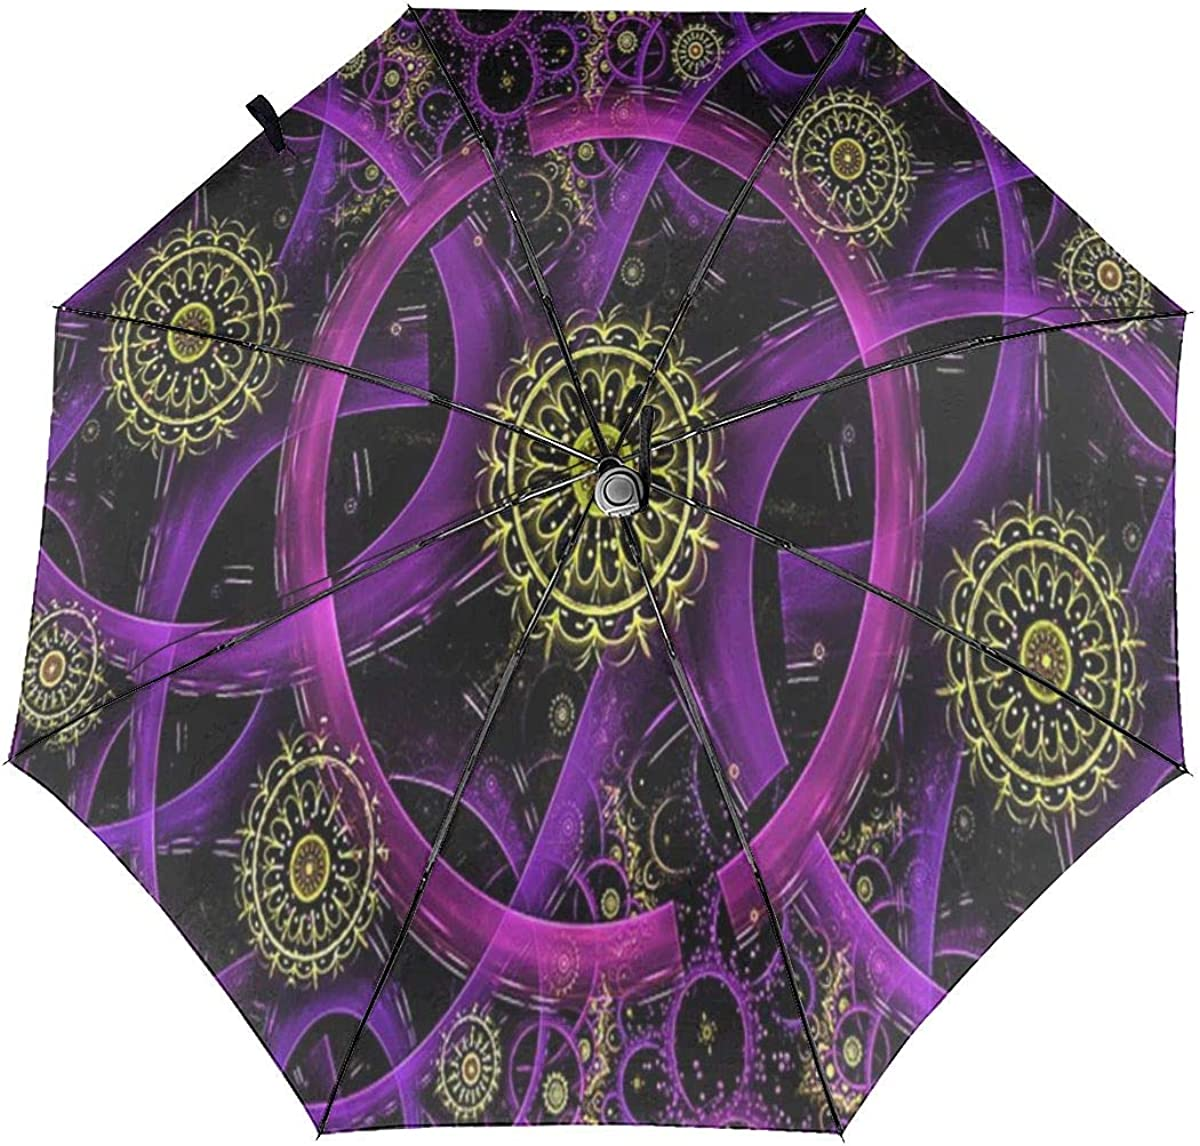 Neon Glowing Circle Geometric Pattern Compact Travel Umbrella Windproof Reinforced Canopy 8 Ribs Umbrella Auto Open And Close Button Customized